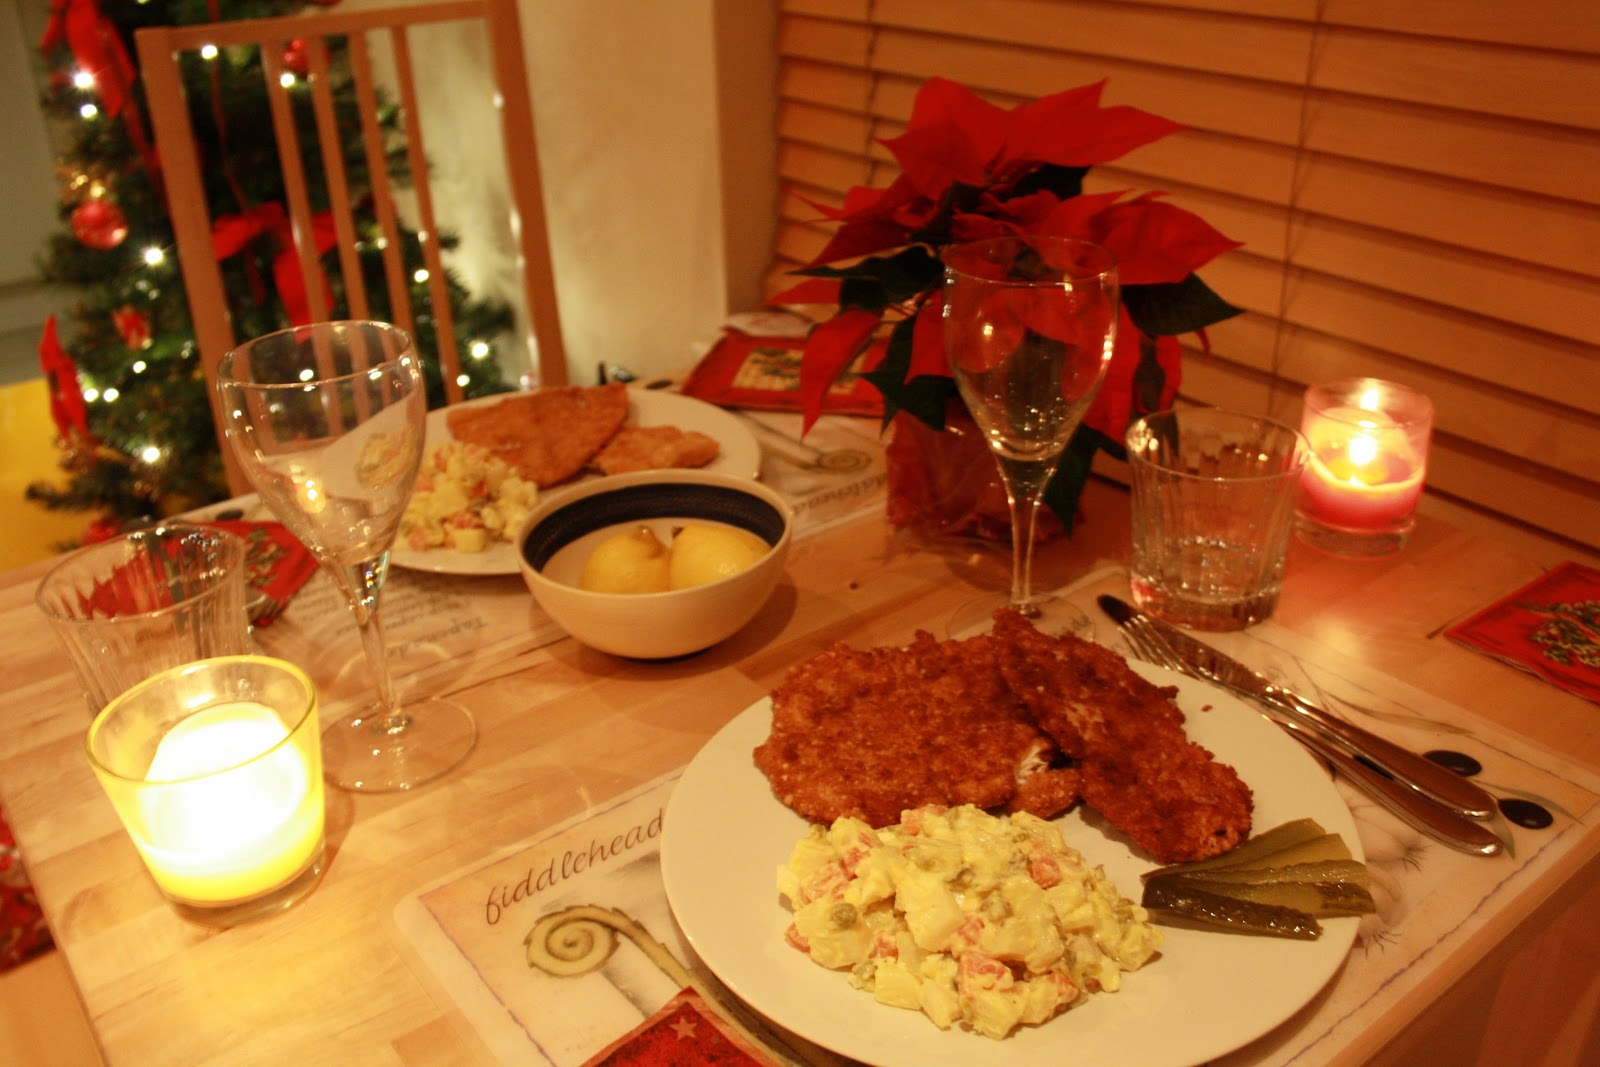 Whether your family serves an Italian-style seafood feast or American classics like roasted ham or turkey, Christmas dinner is the perfect occasion to bring everyone together.